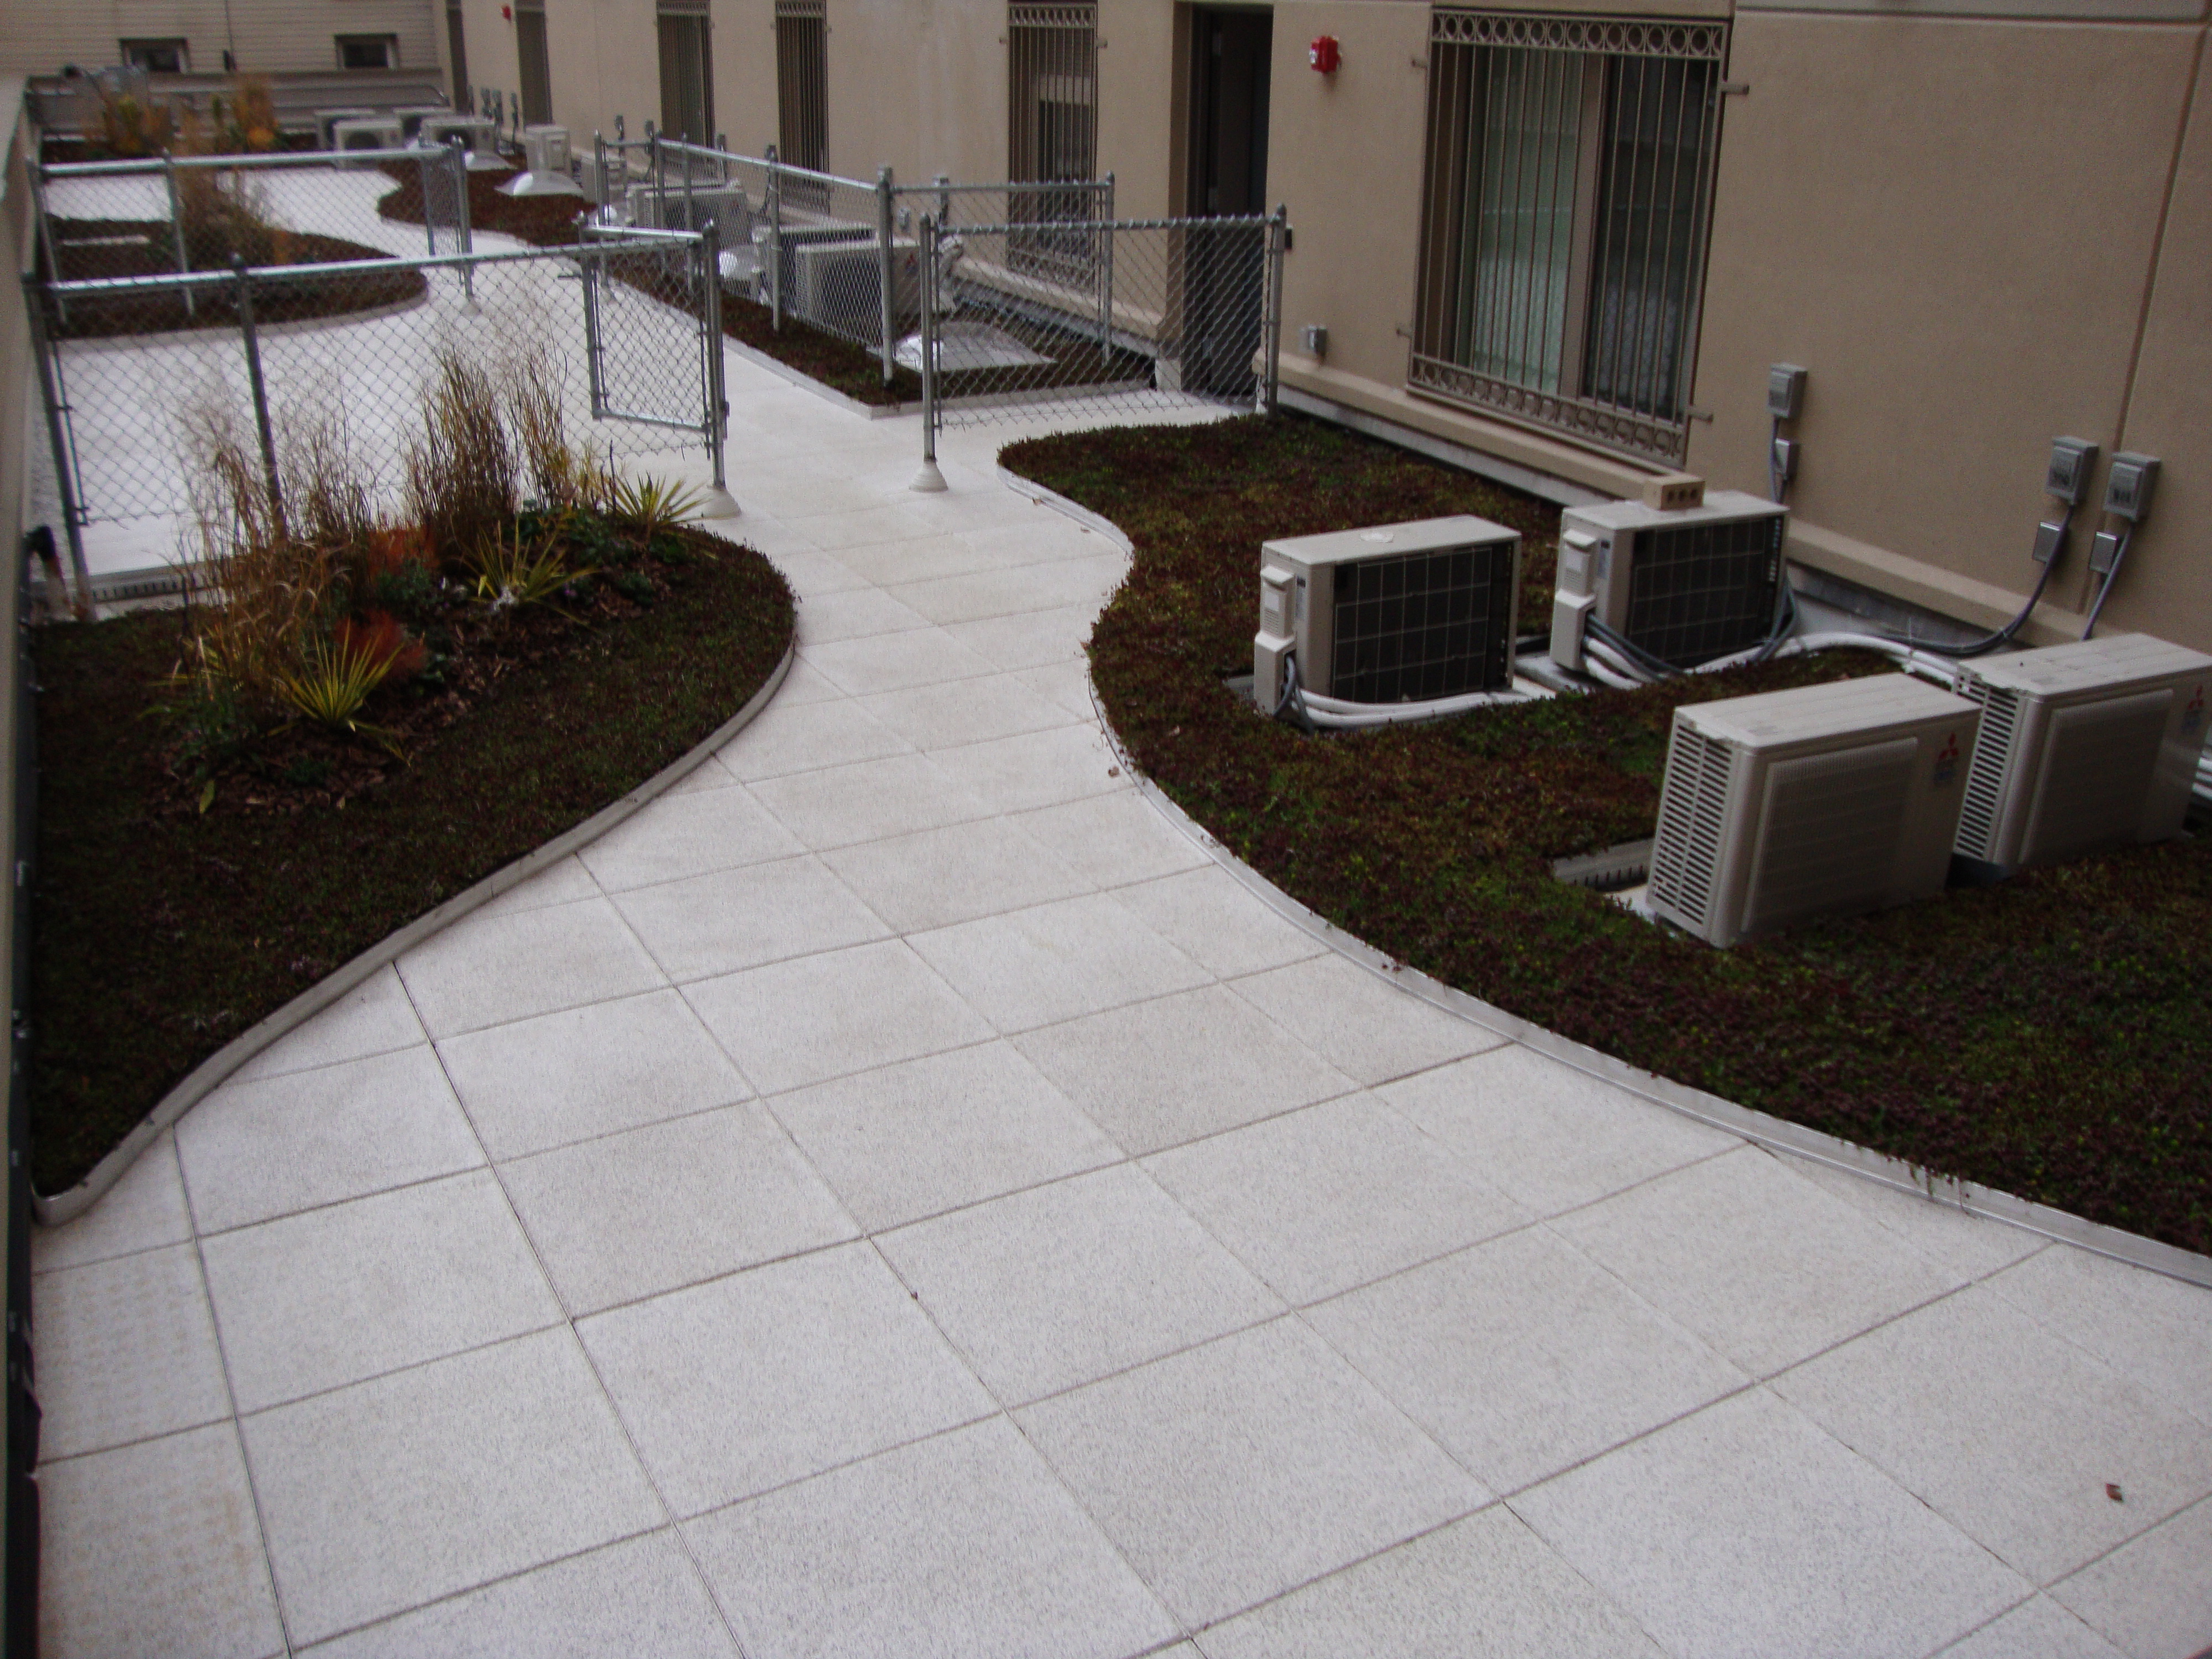 Unity Green Roofs Sustainable Roofing Products Green